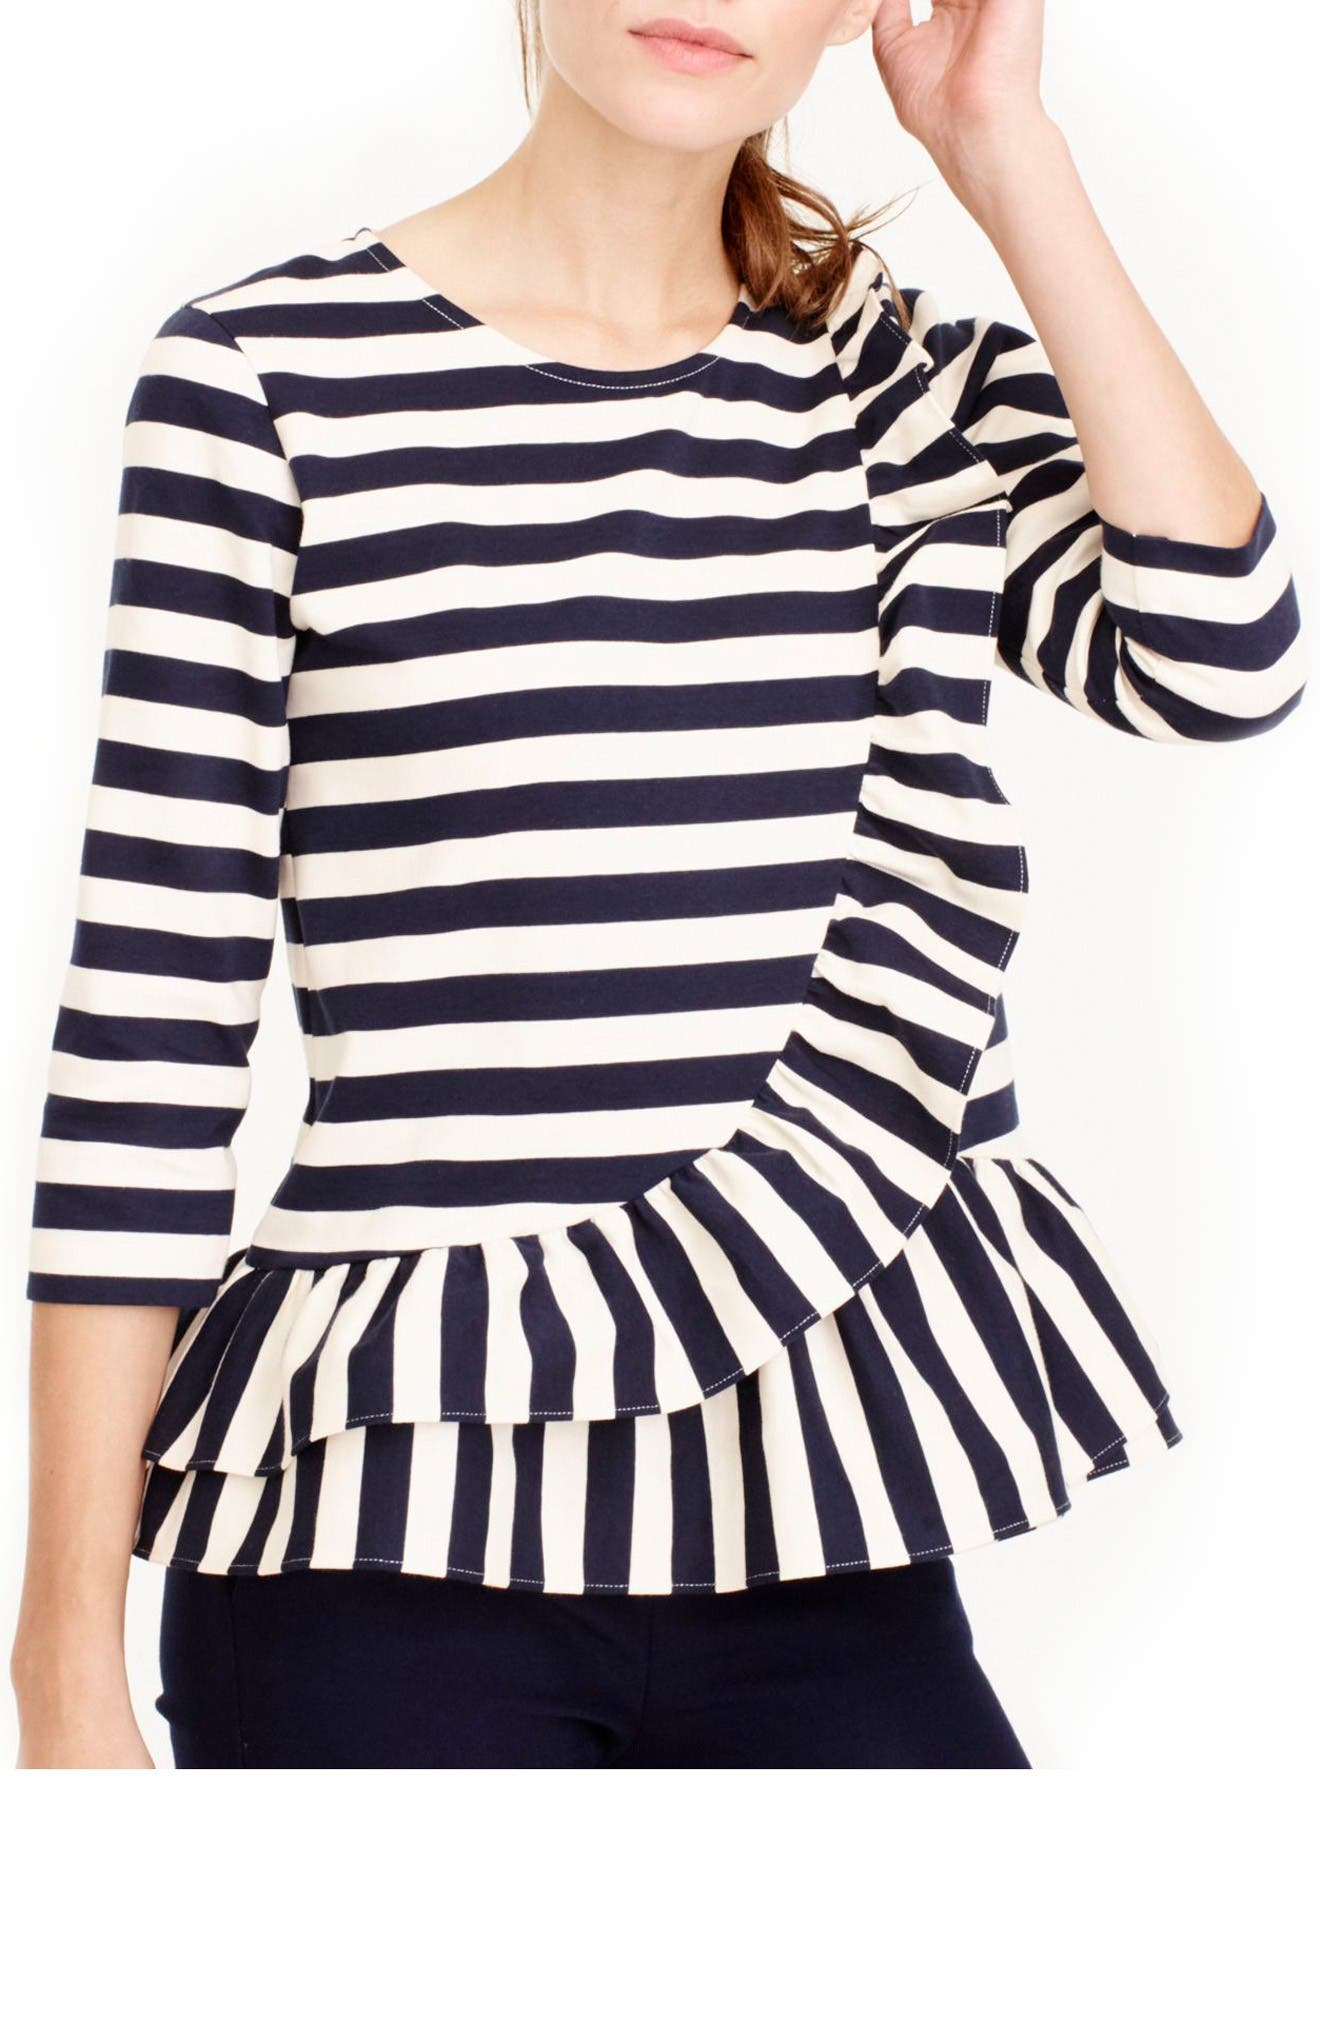 Alternate Image 1 Selected - J.Crew Asymmetrical Stripe Ruffle Top